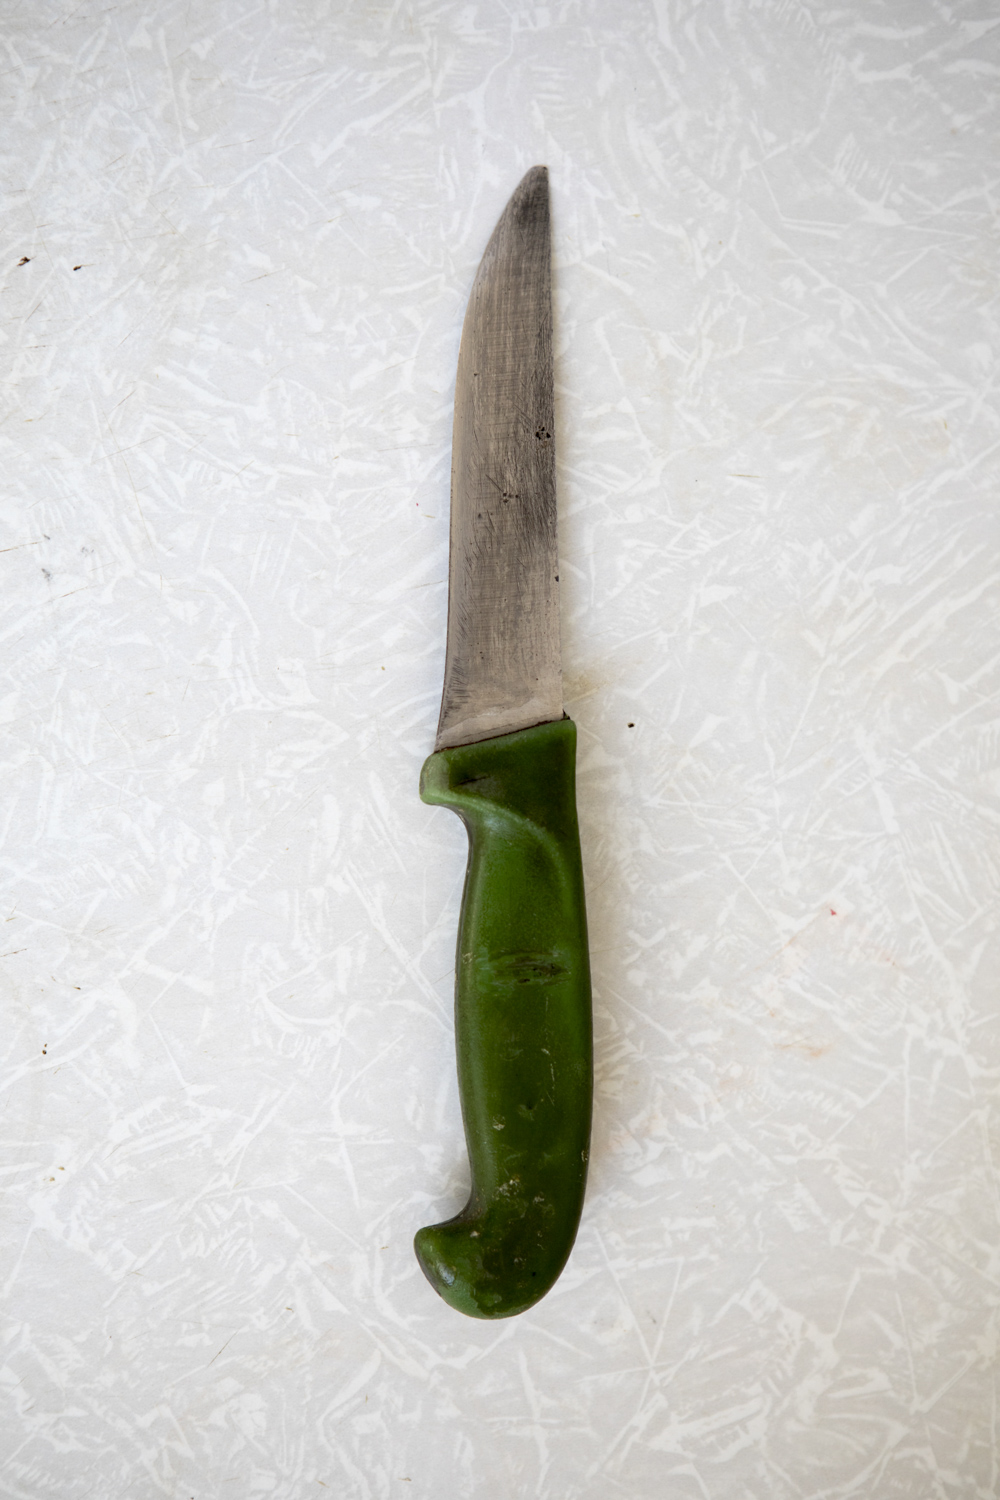 The knife Ilshat used to stab Nadezda with. They argued about money.